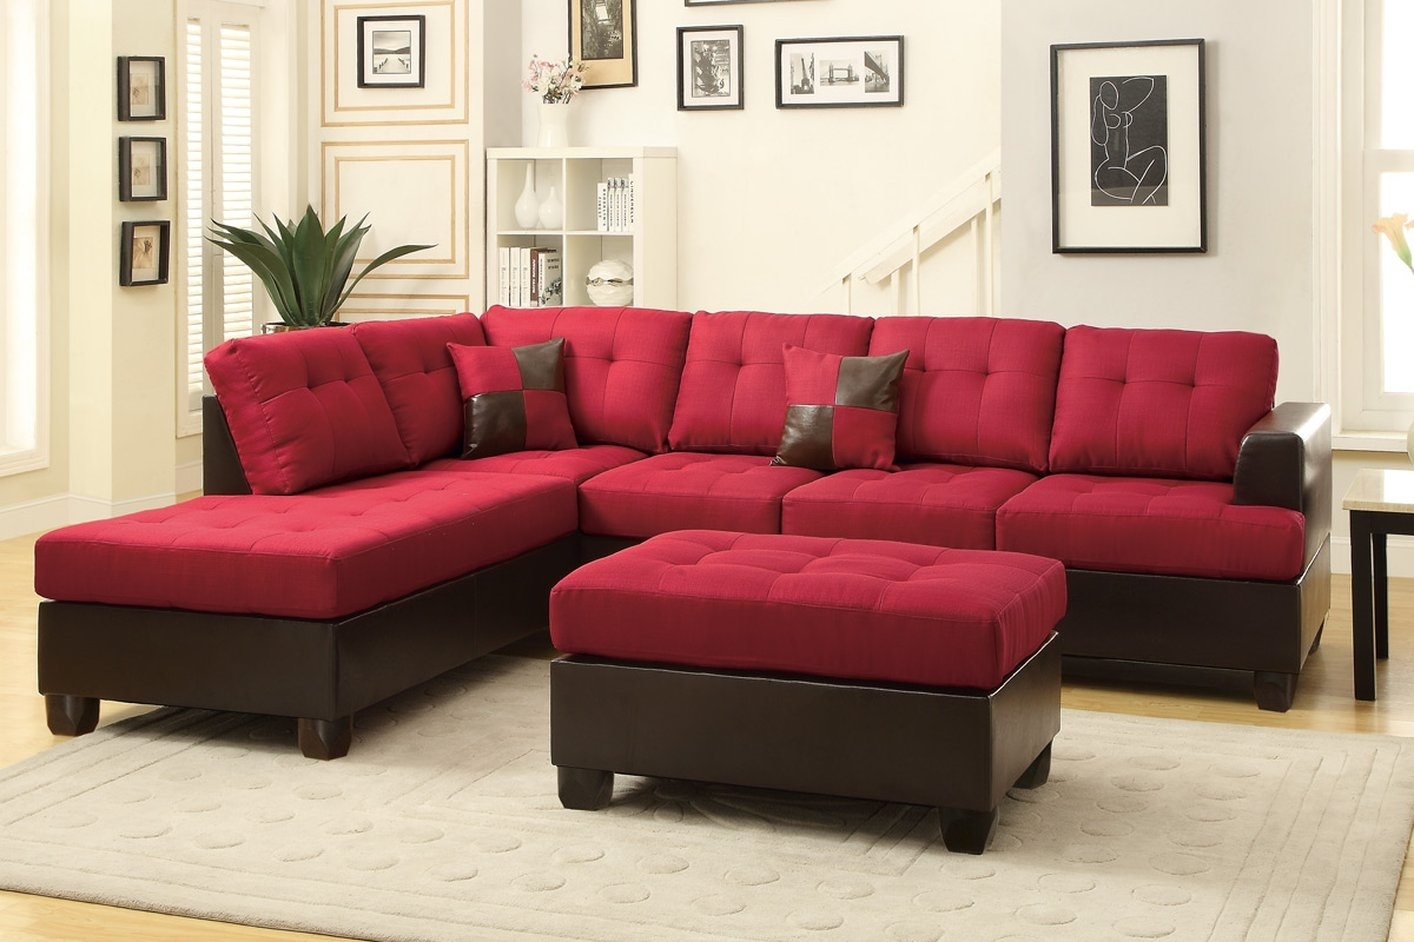 Sectional Sofas Cincinnati – Hotelsbacau Intended For Cincinnati Sectional Sofas (Image 7 of 10)